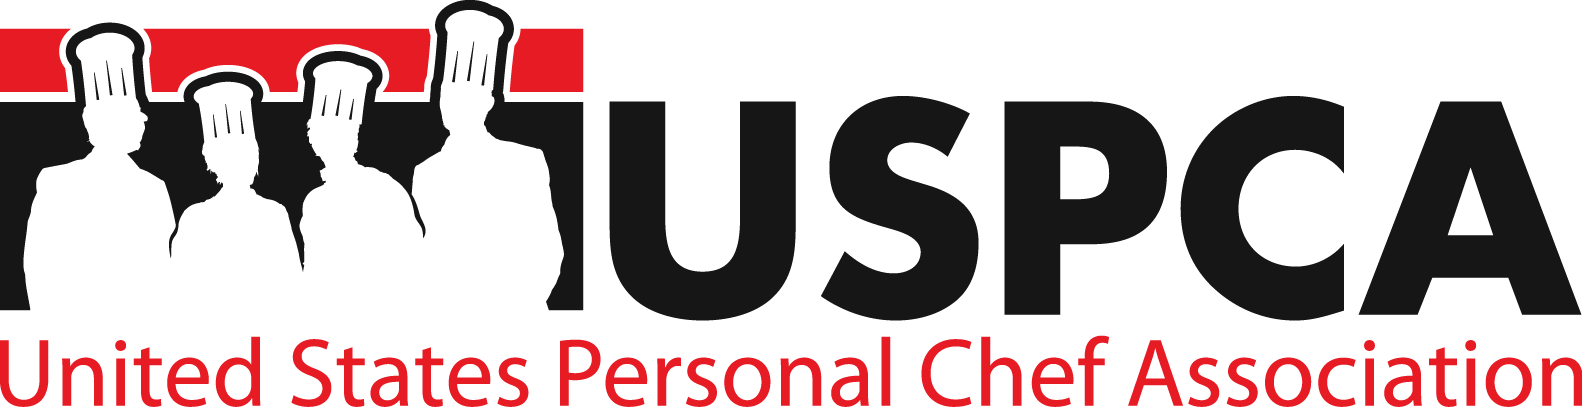 United States Personal Chef Association (USPCA) Logo